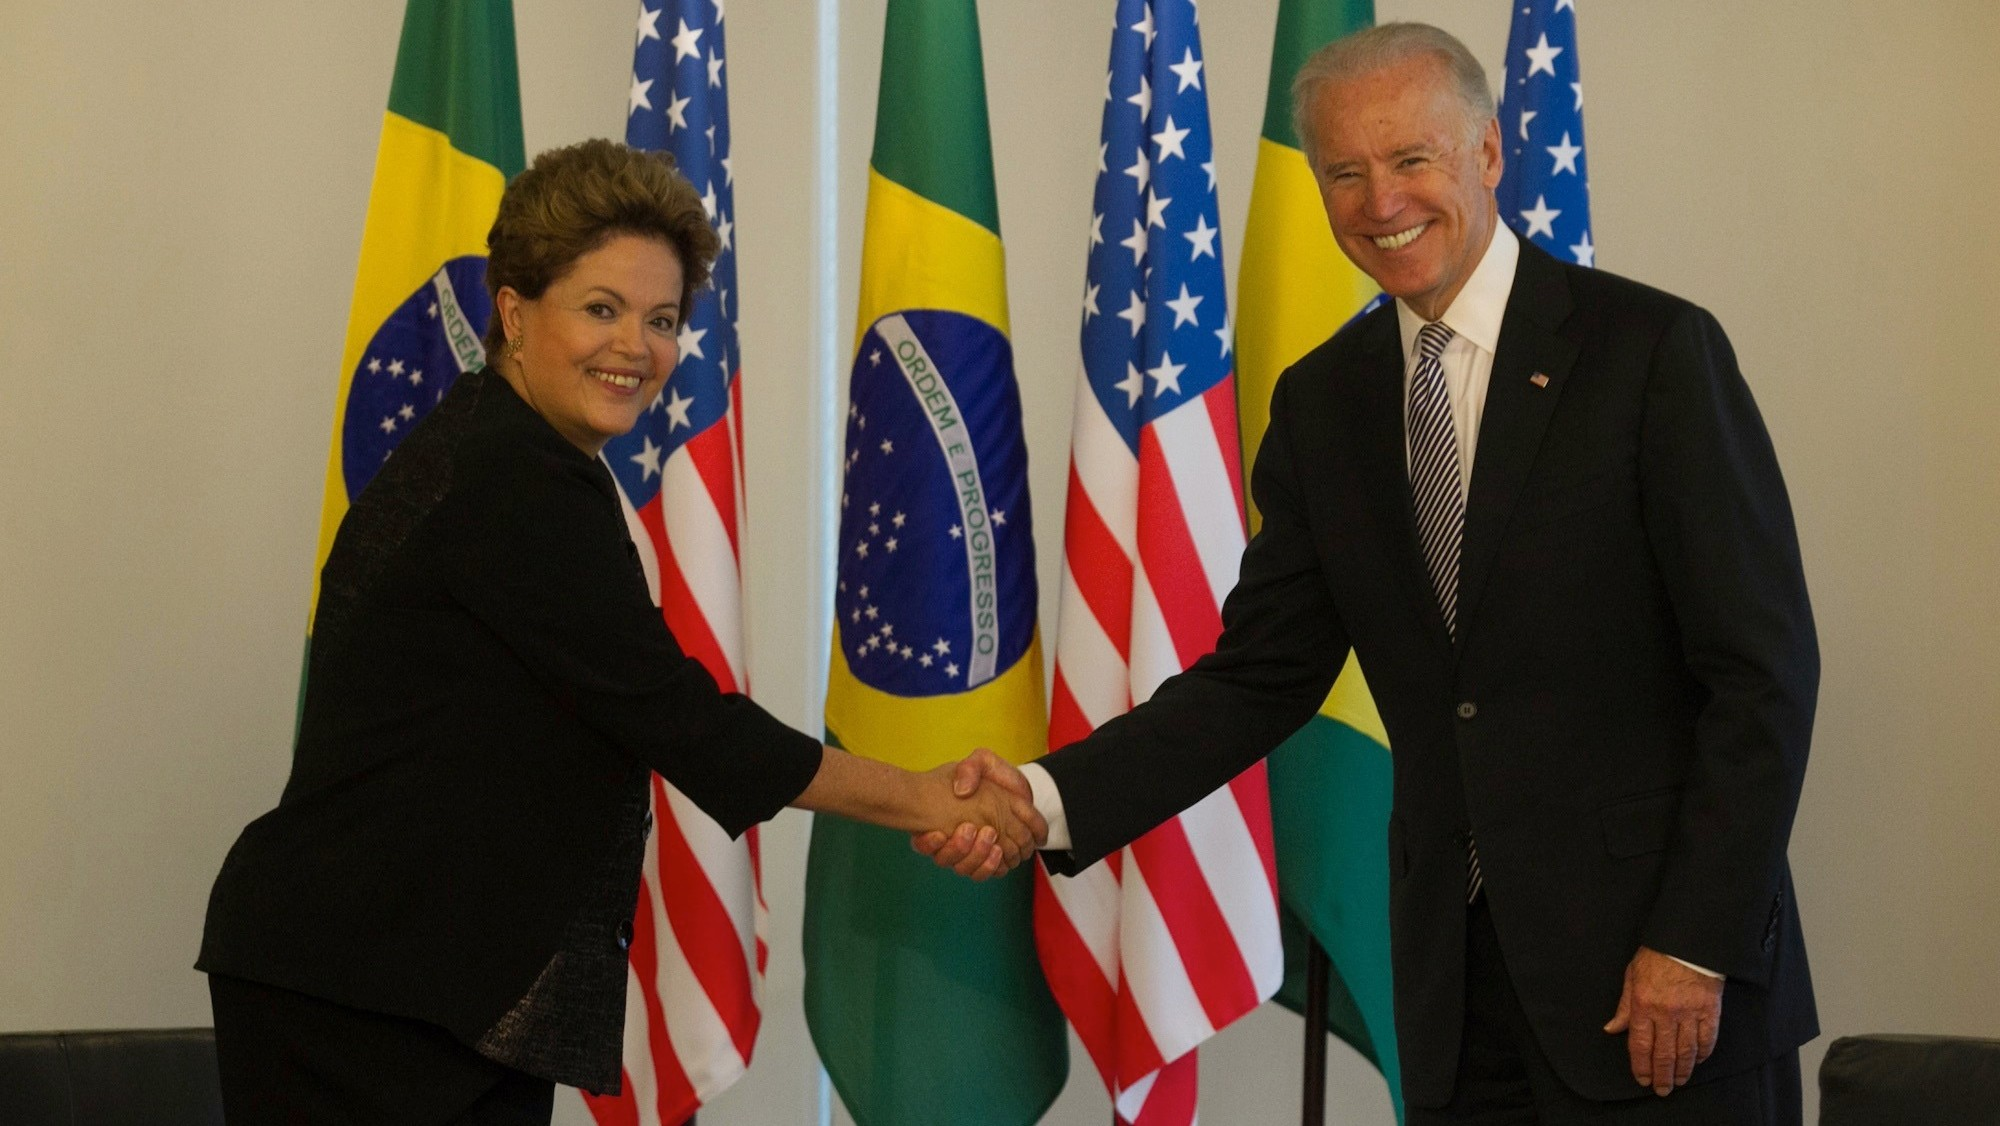 Joe Biden Hand-Delivered Torture Reports to Brazil at the World Cup